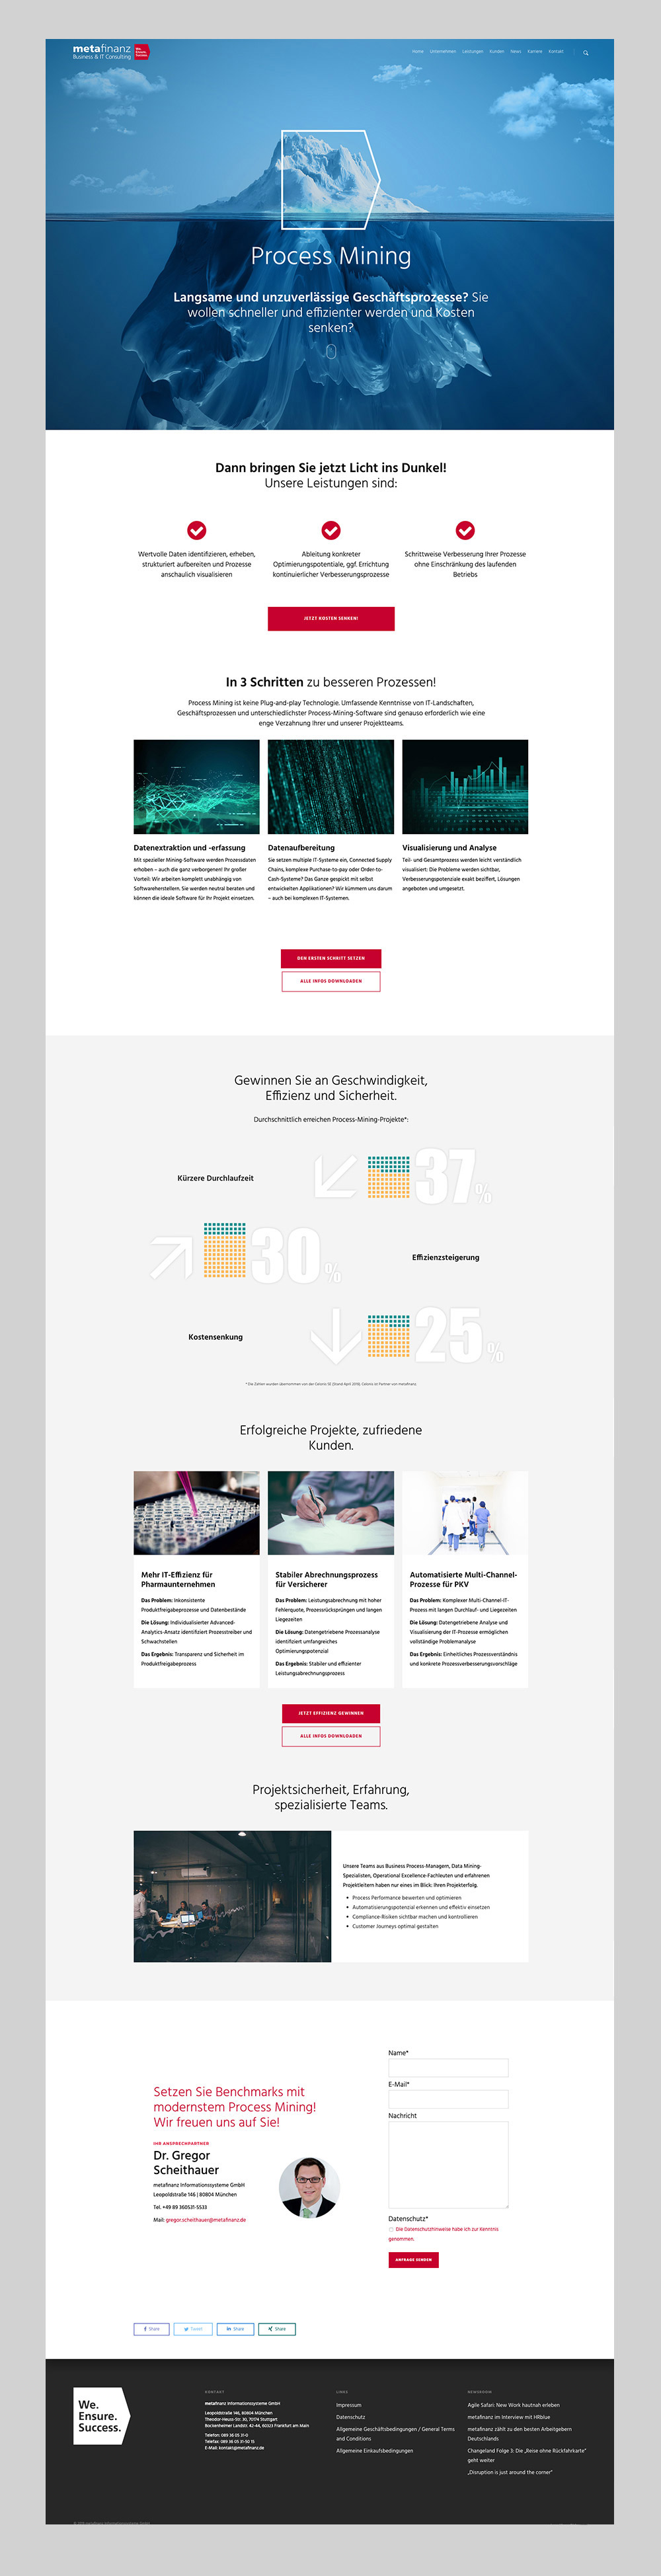 metafinanz – Web Design – Process Mining